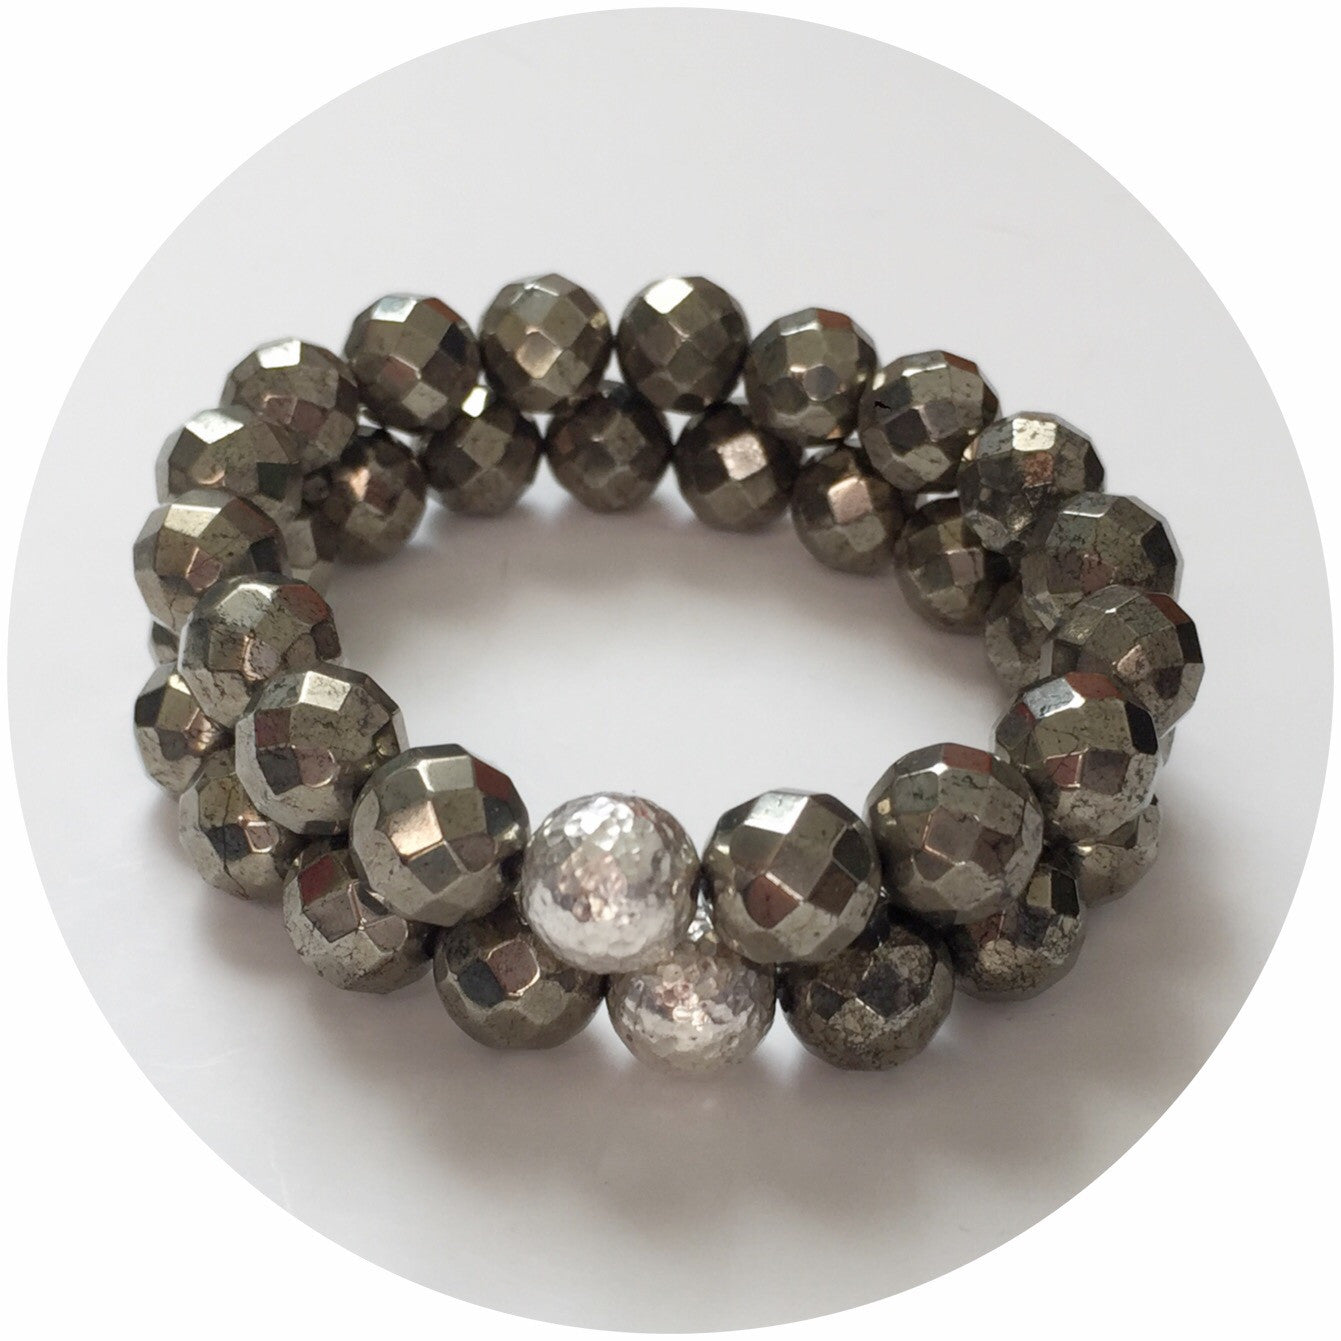 Pyrite with Hammered Silver Accent - Oriana Lamarca LLC